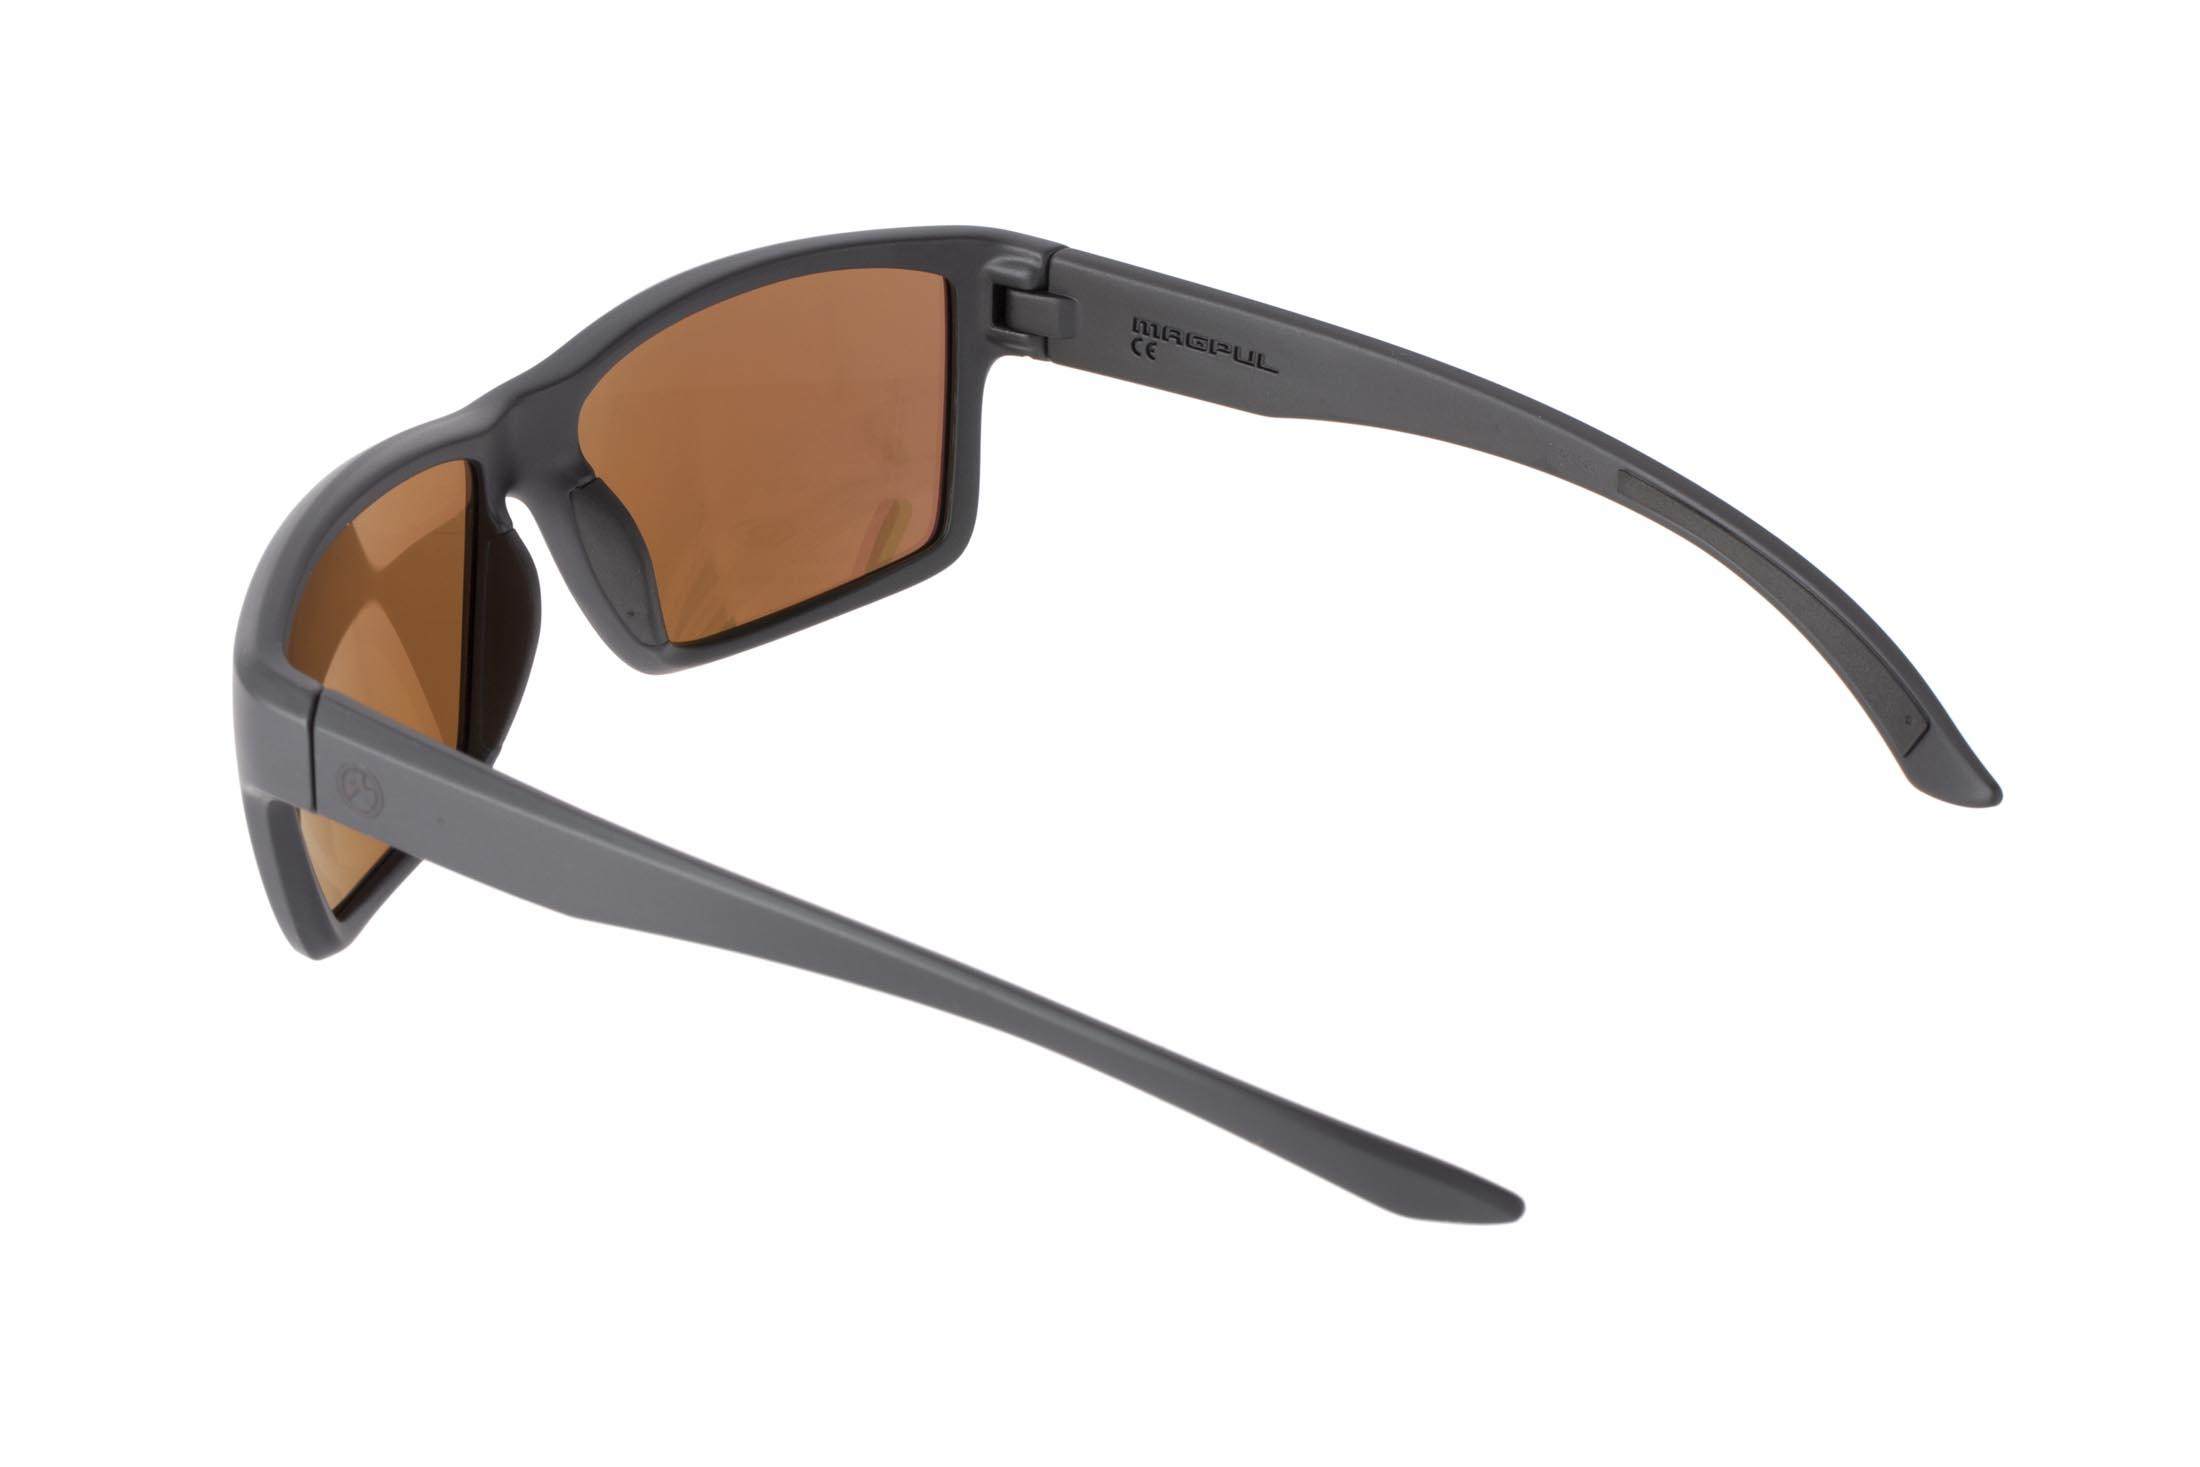 Magpul Summit Black frame eye protection with bronze/blue polarized lenses are designed to complement over-ear hearing protection